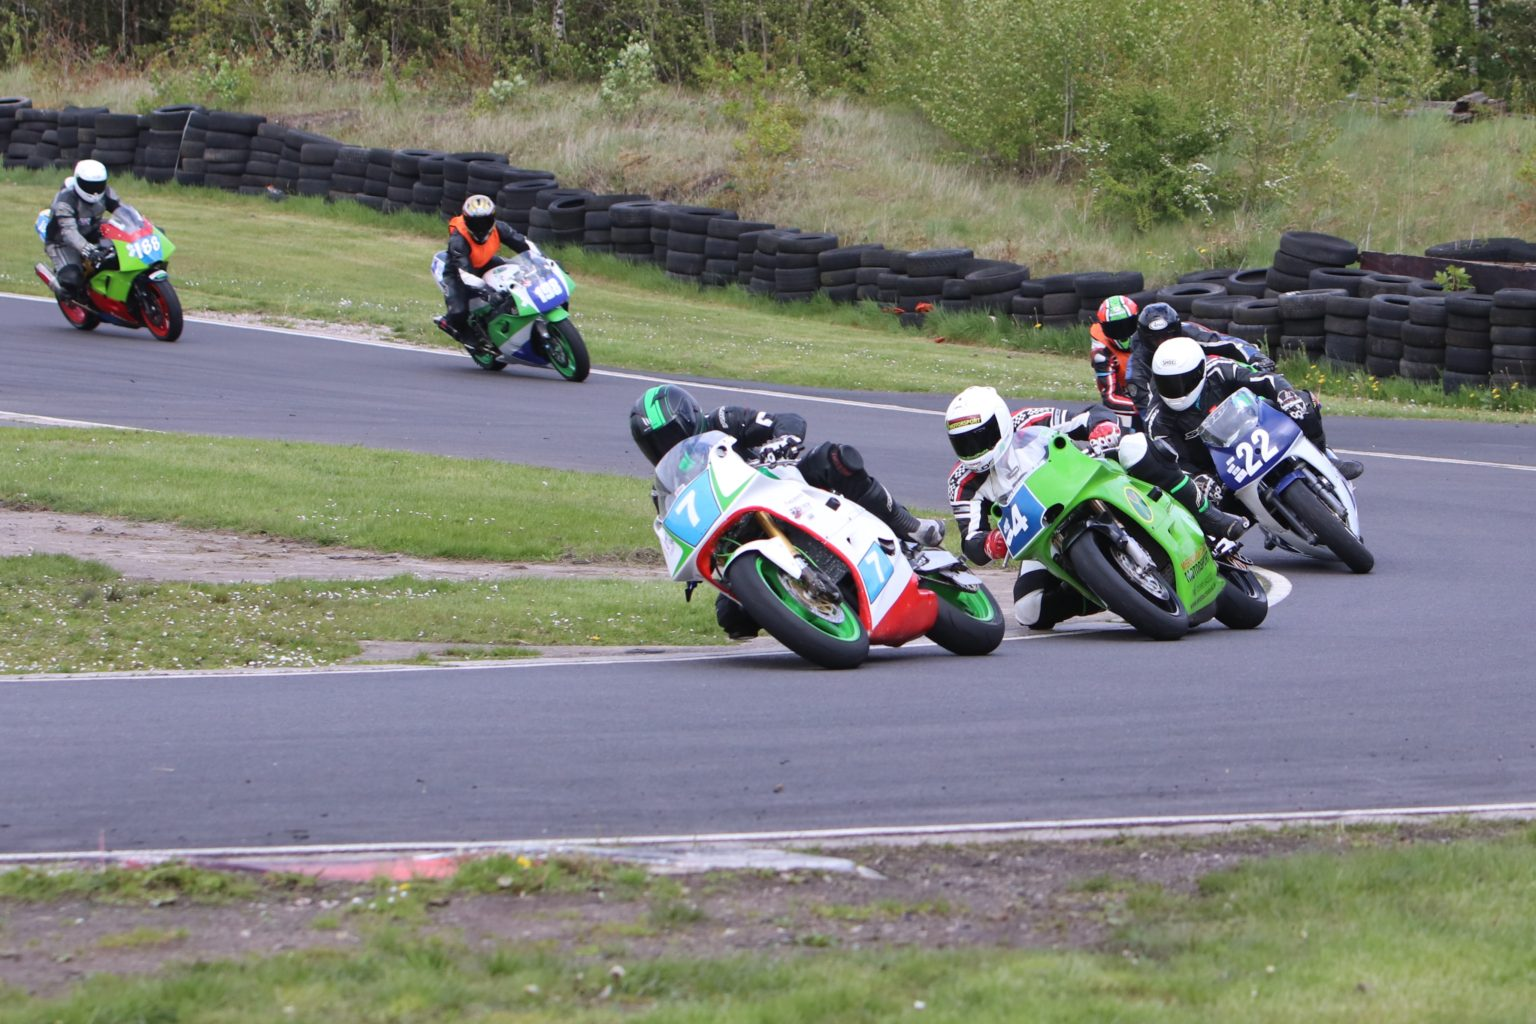 Reigning F400 champ Griffiths in a tight battle for victory...